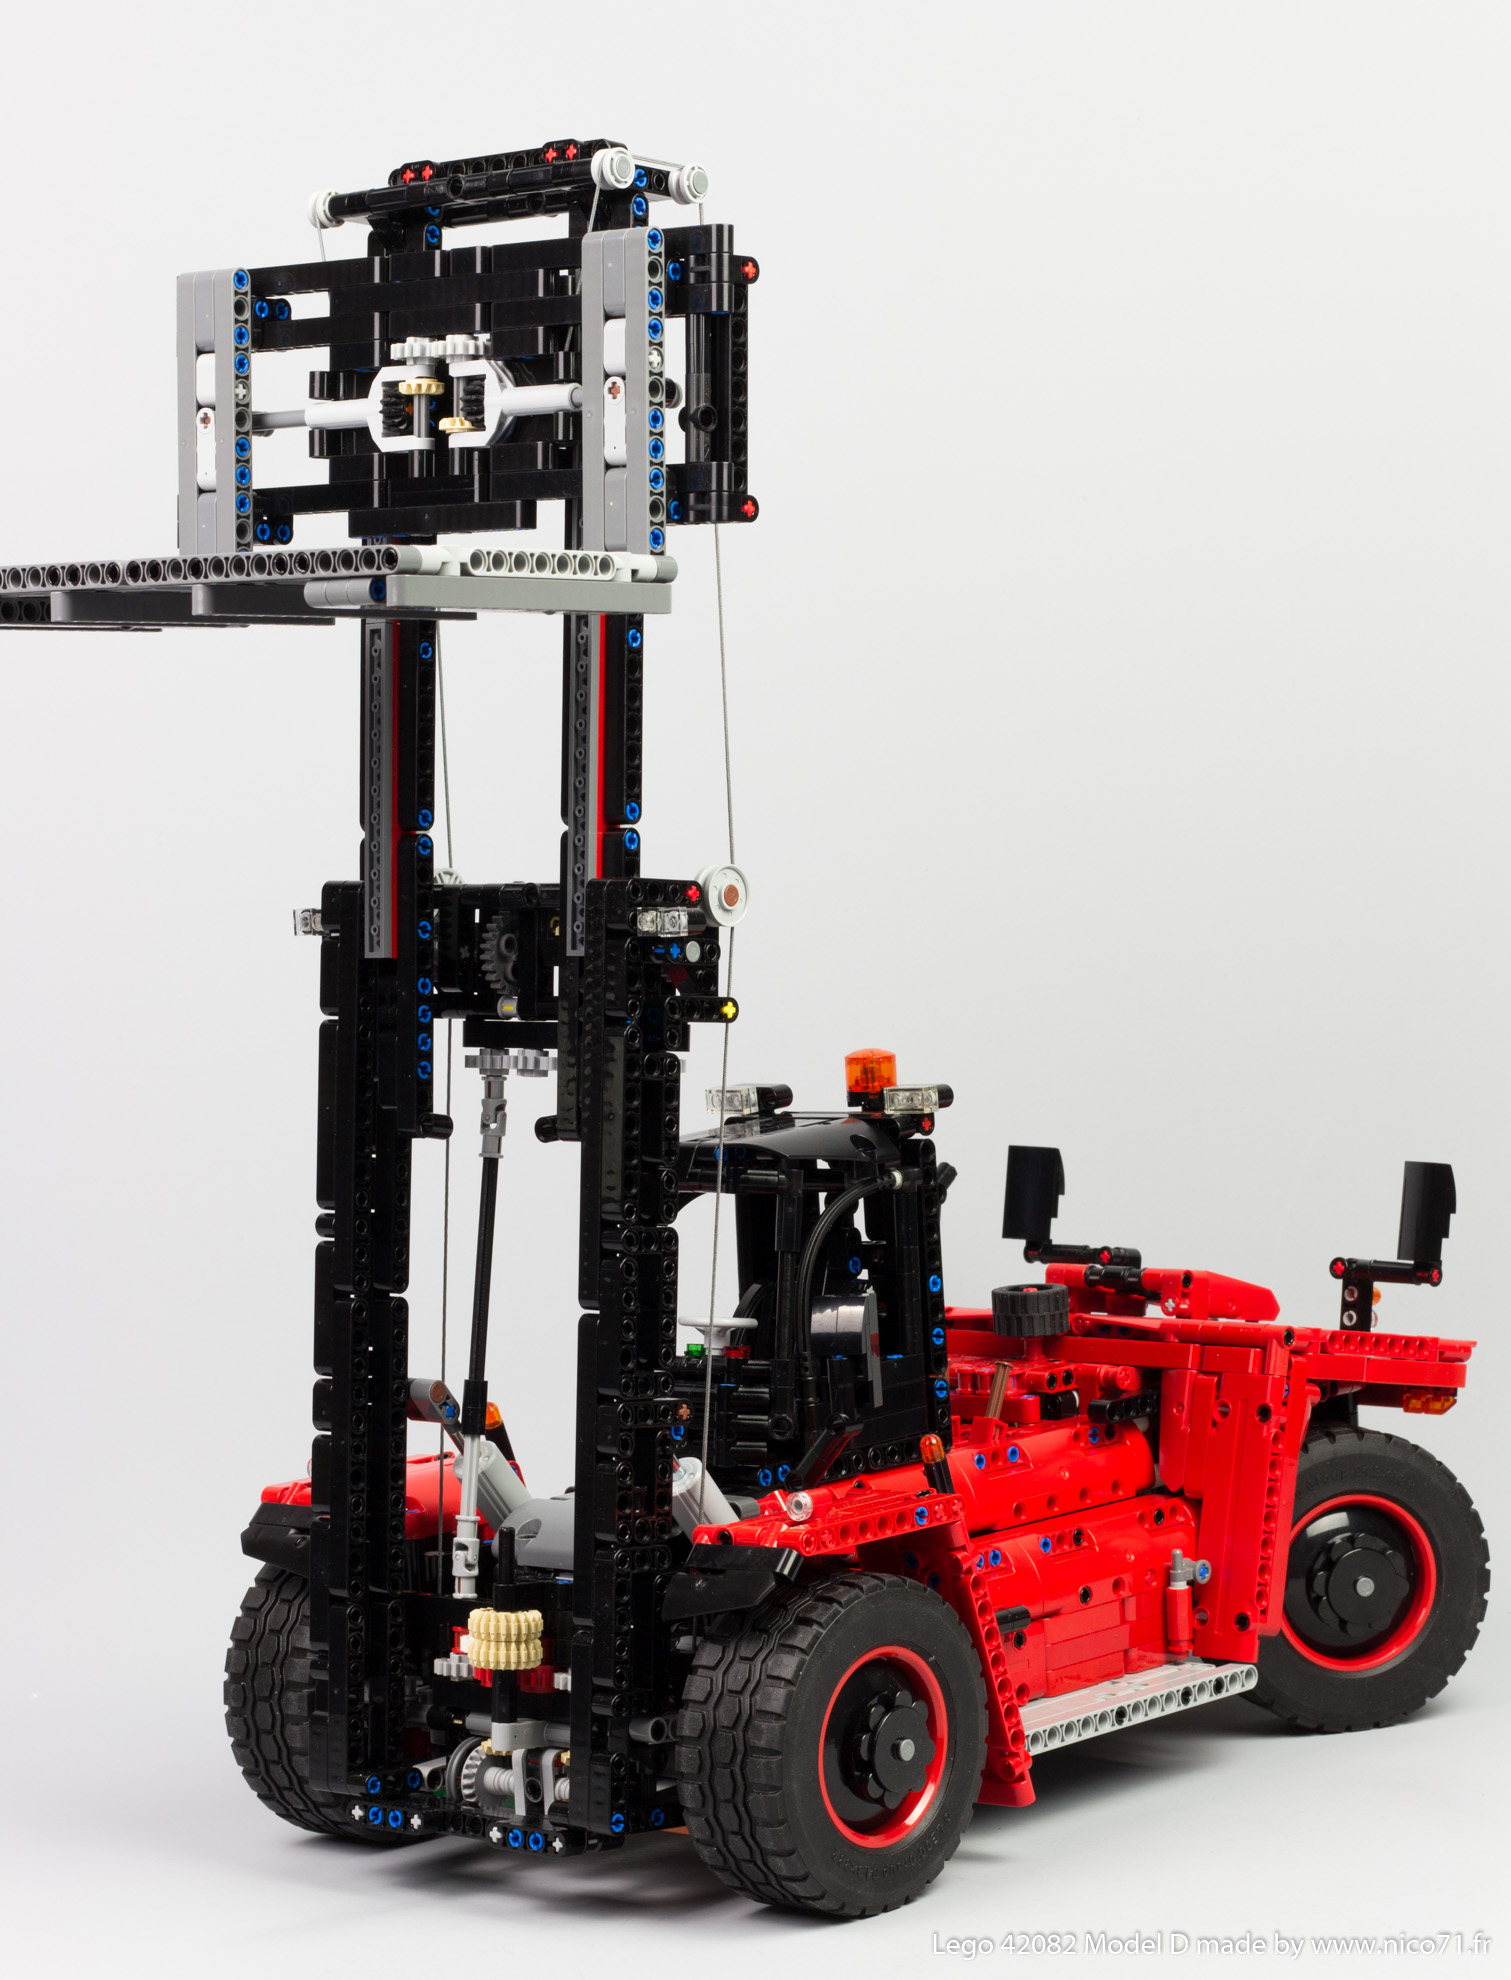 Lego-42082-Model-D-Heavy-Forklift-26